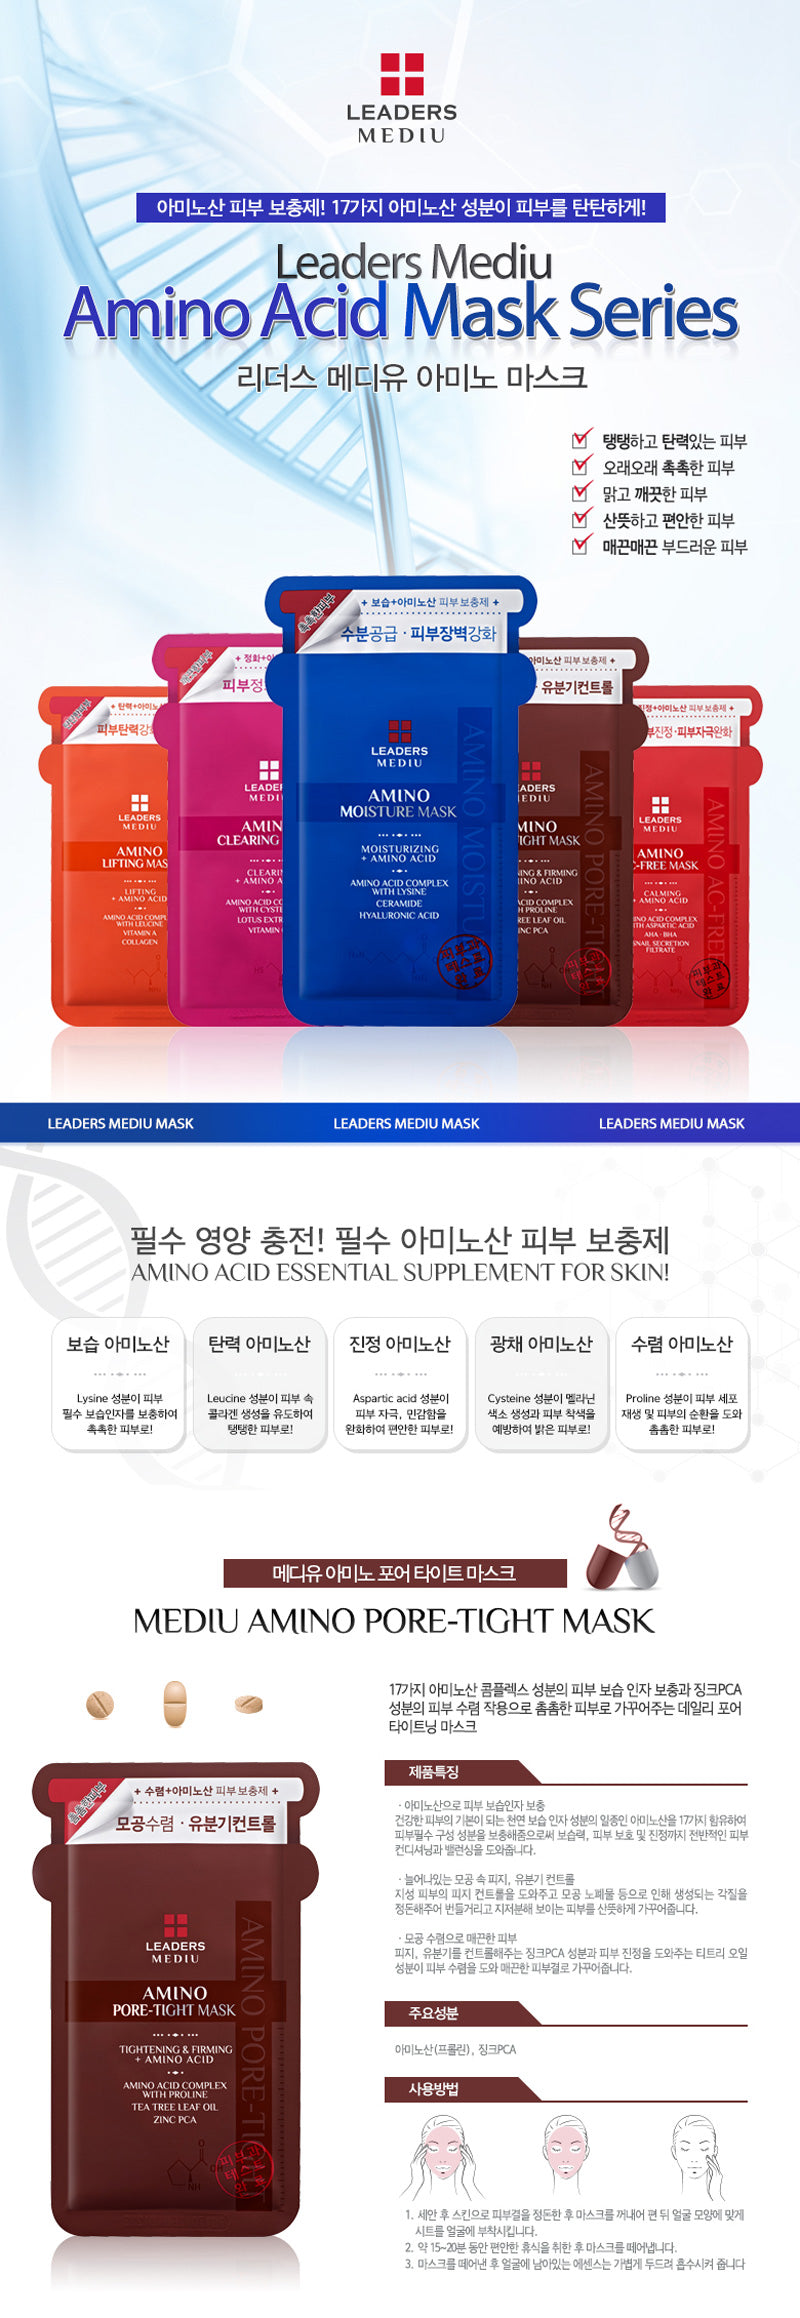 Leaders Mediu Amino Pore-Tight Mask